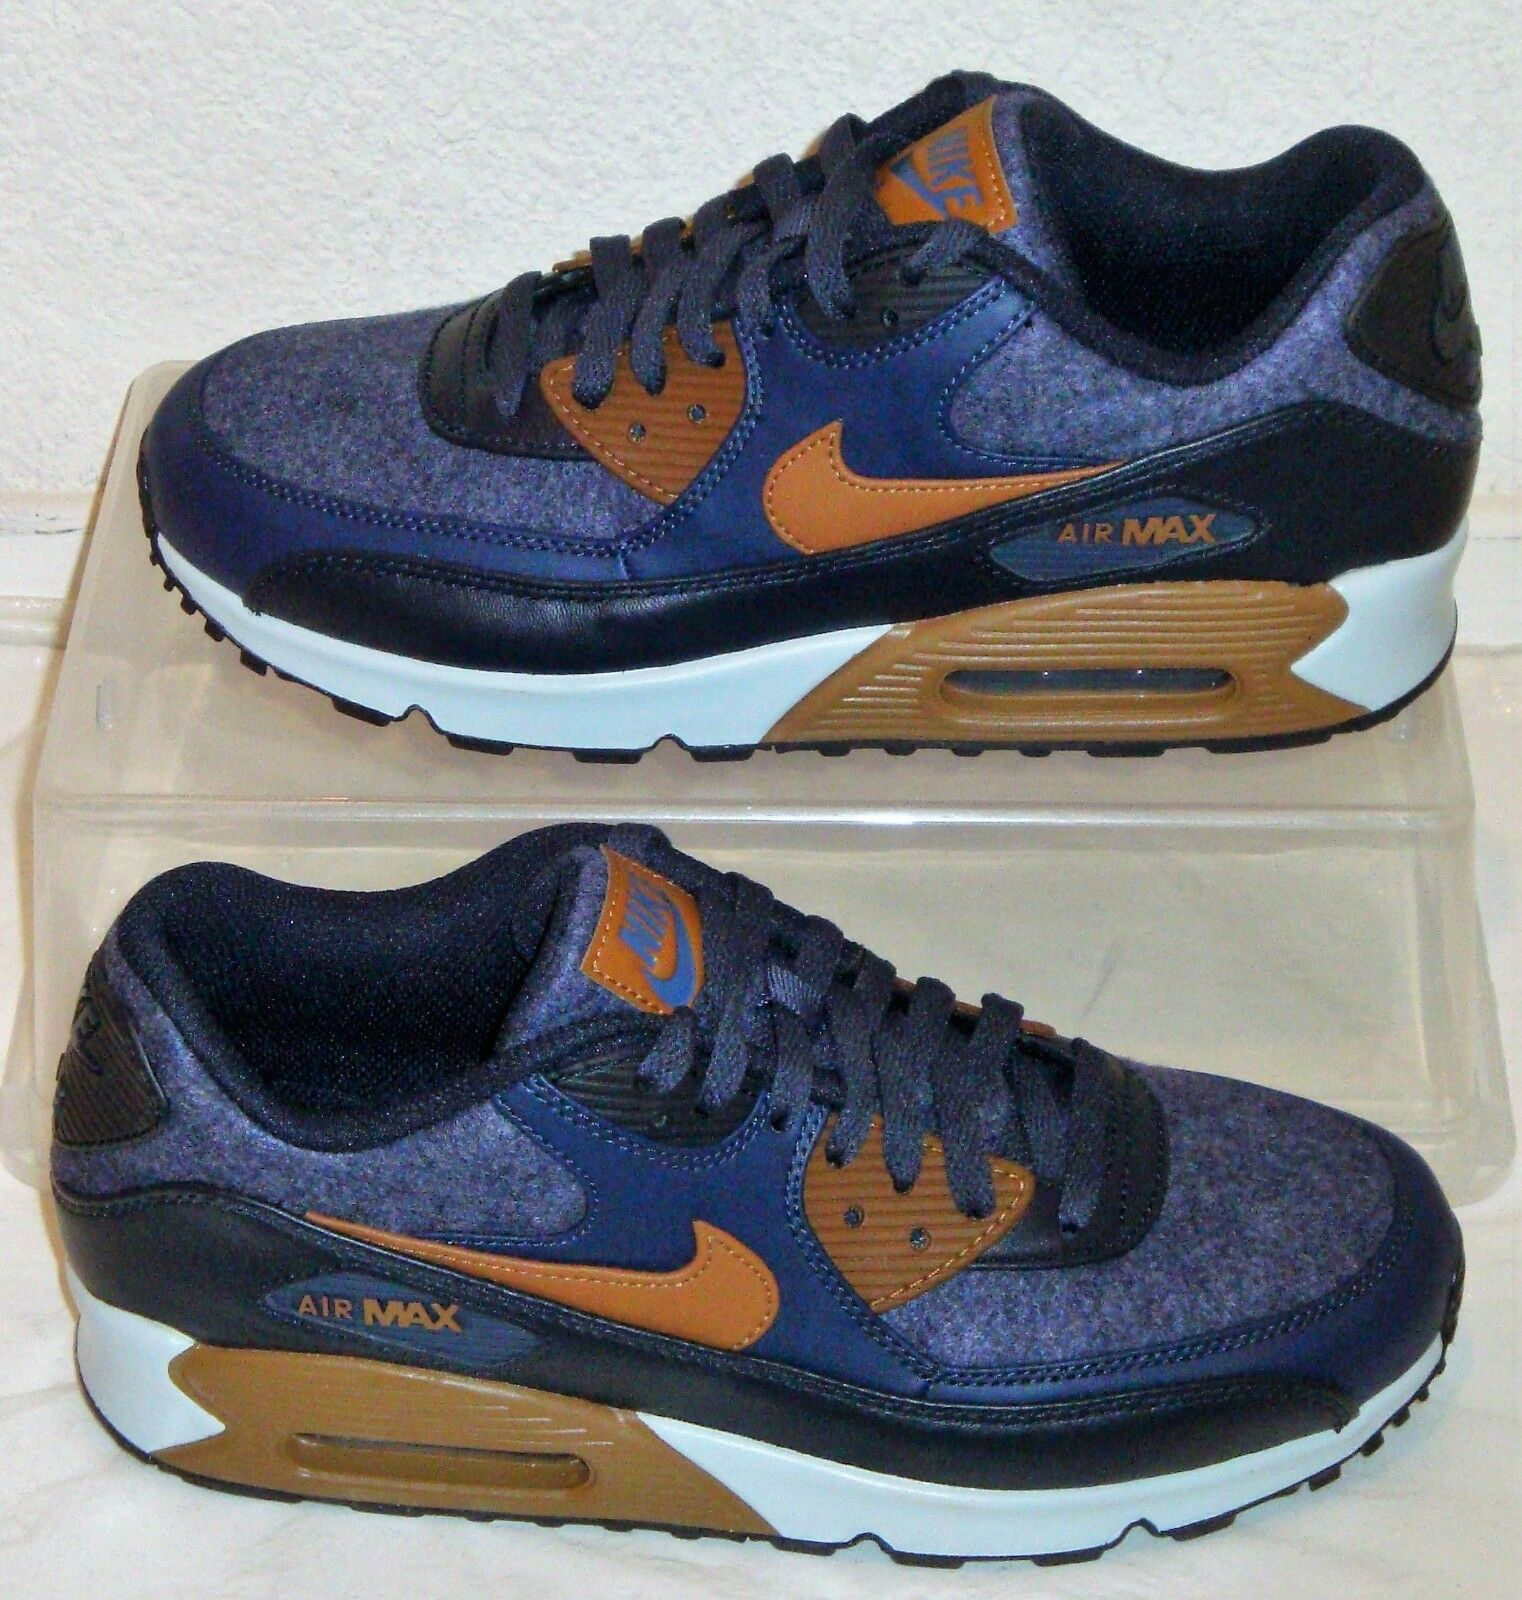 New Nike Air Max 90 Premium Denim Obsidian Mens US Size 8.5